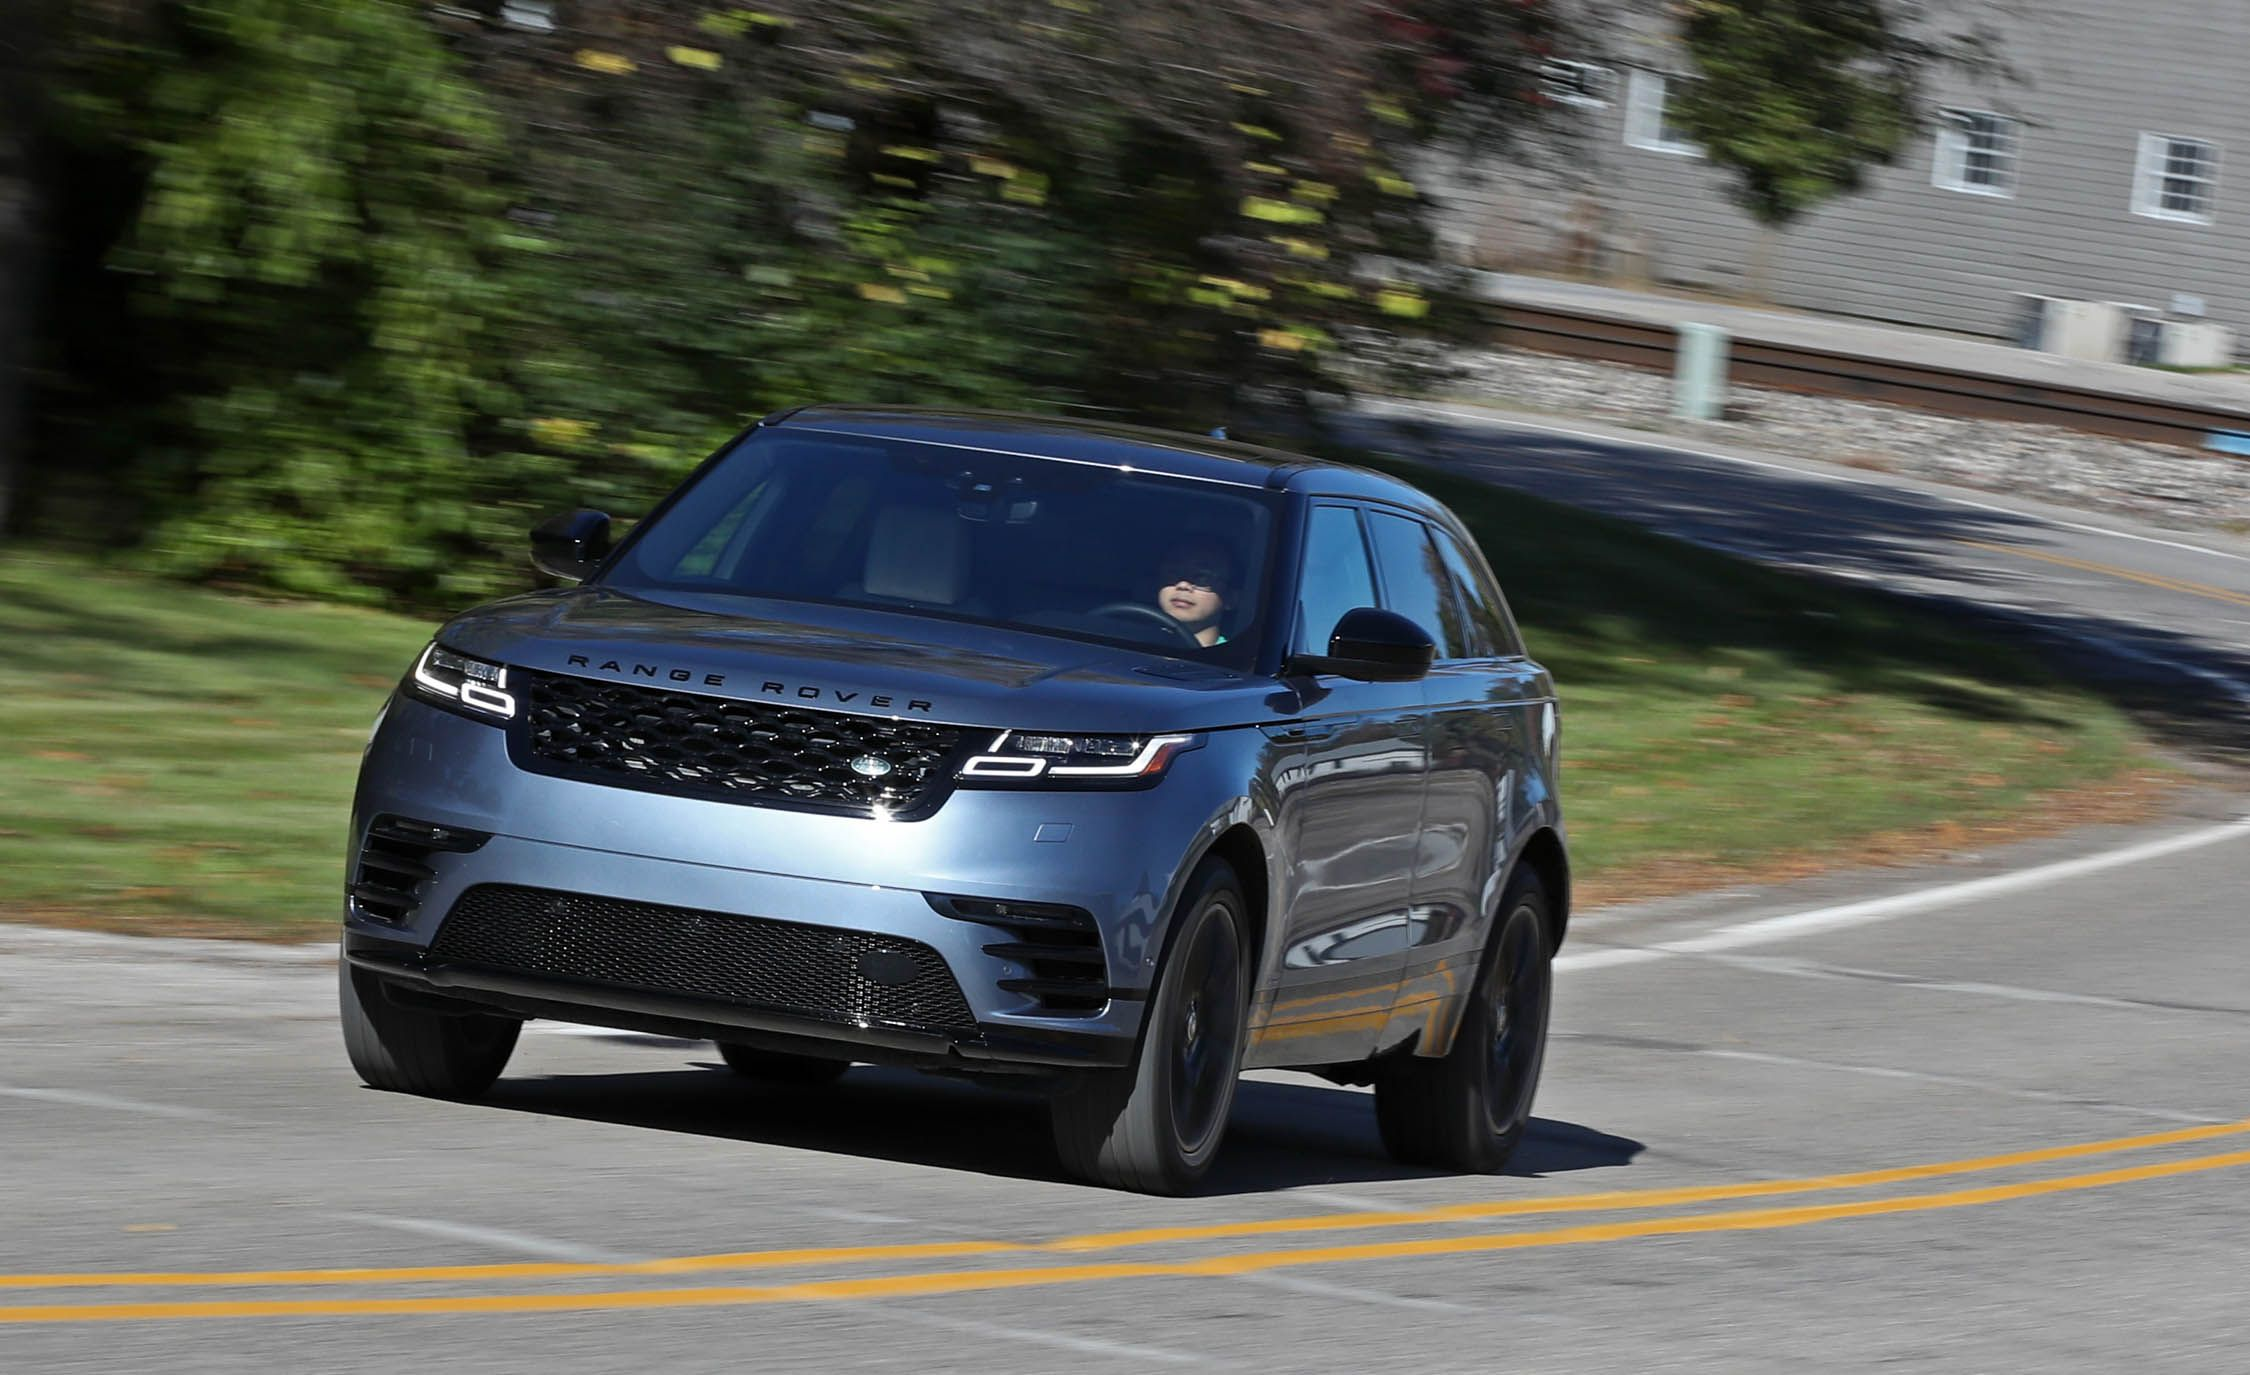 2018 Range Rover Velar Performance And Driving